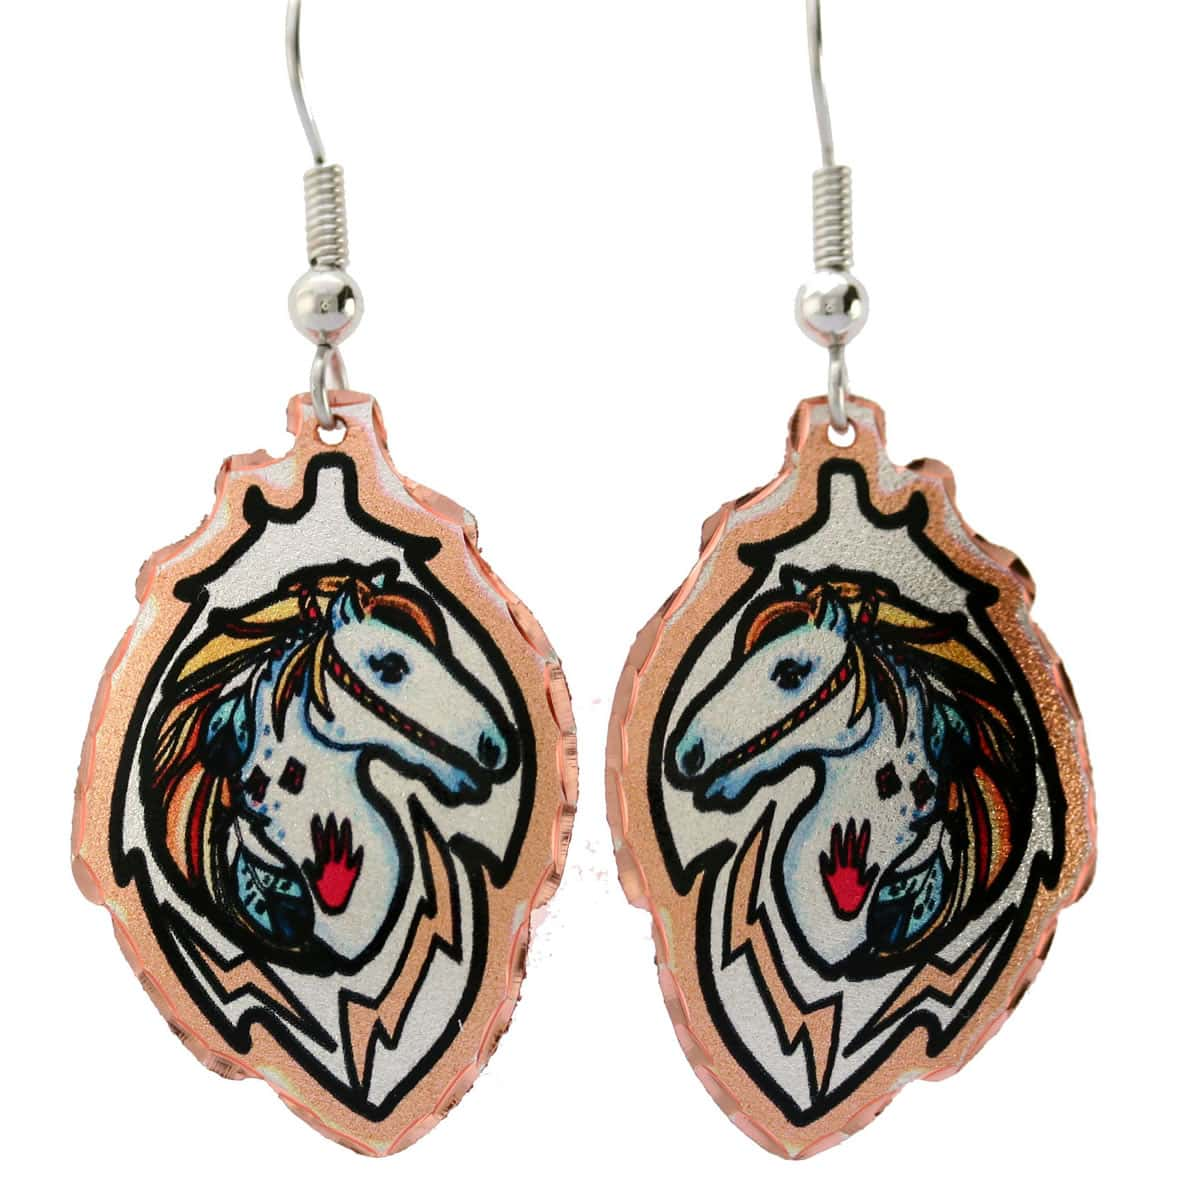 Colorful war pony earrings handmade from copper in feather shape